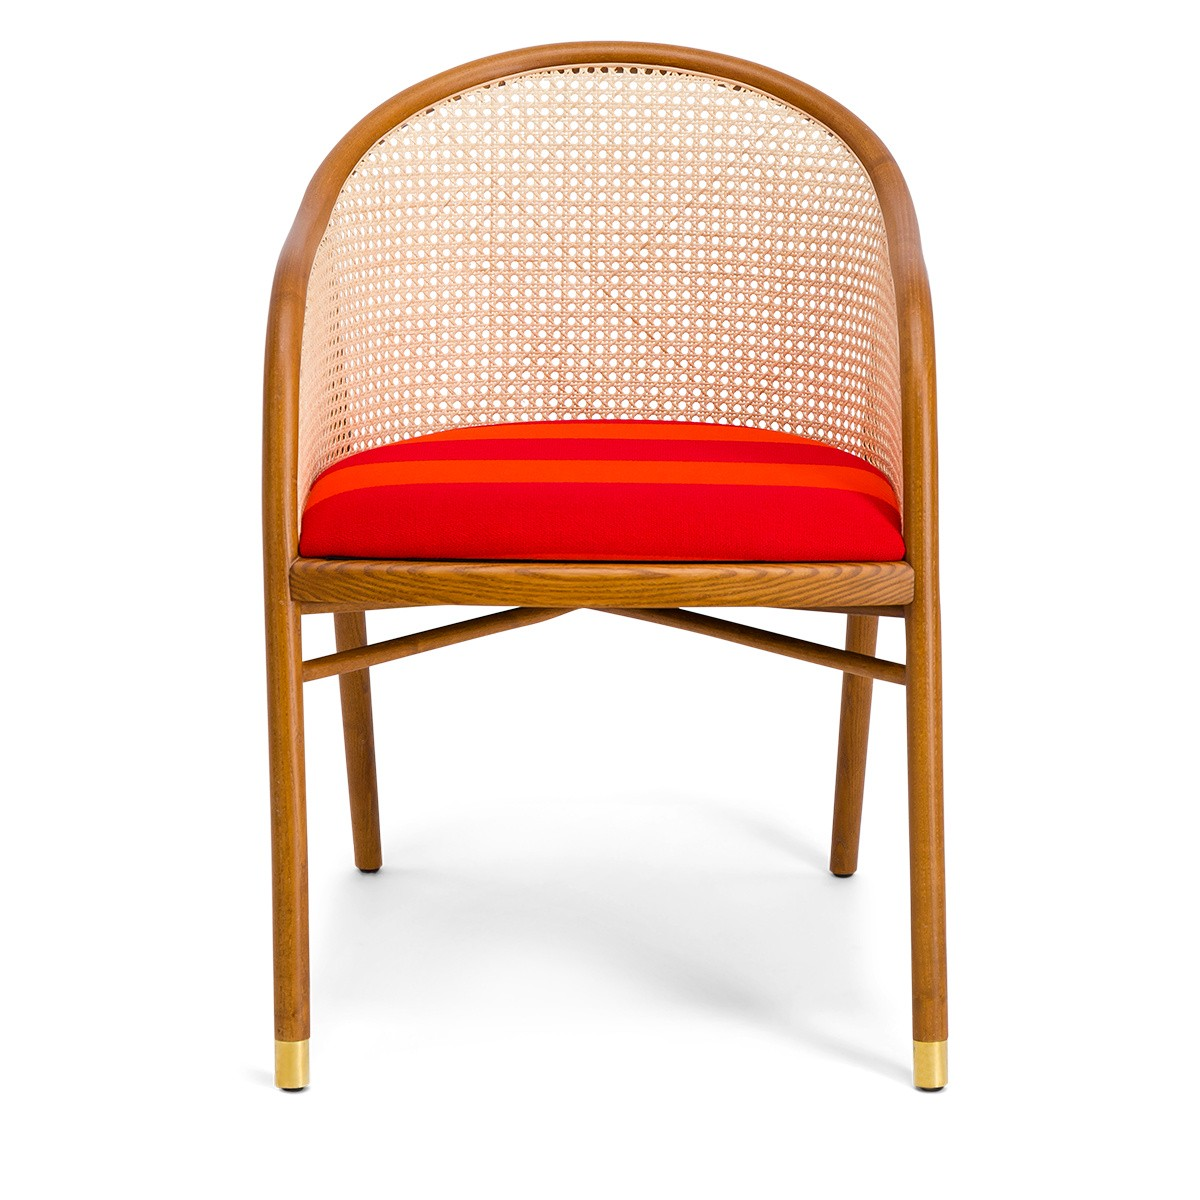 Cavallo Armchair, Kvadrat / Raf Simons Orange Wool with Cherrywood Frame - Limited Edition